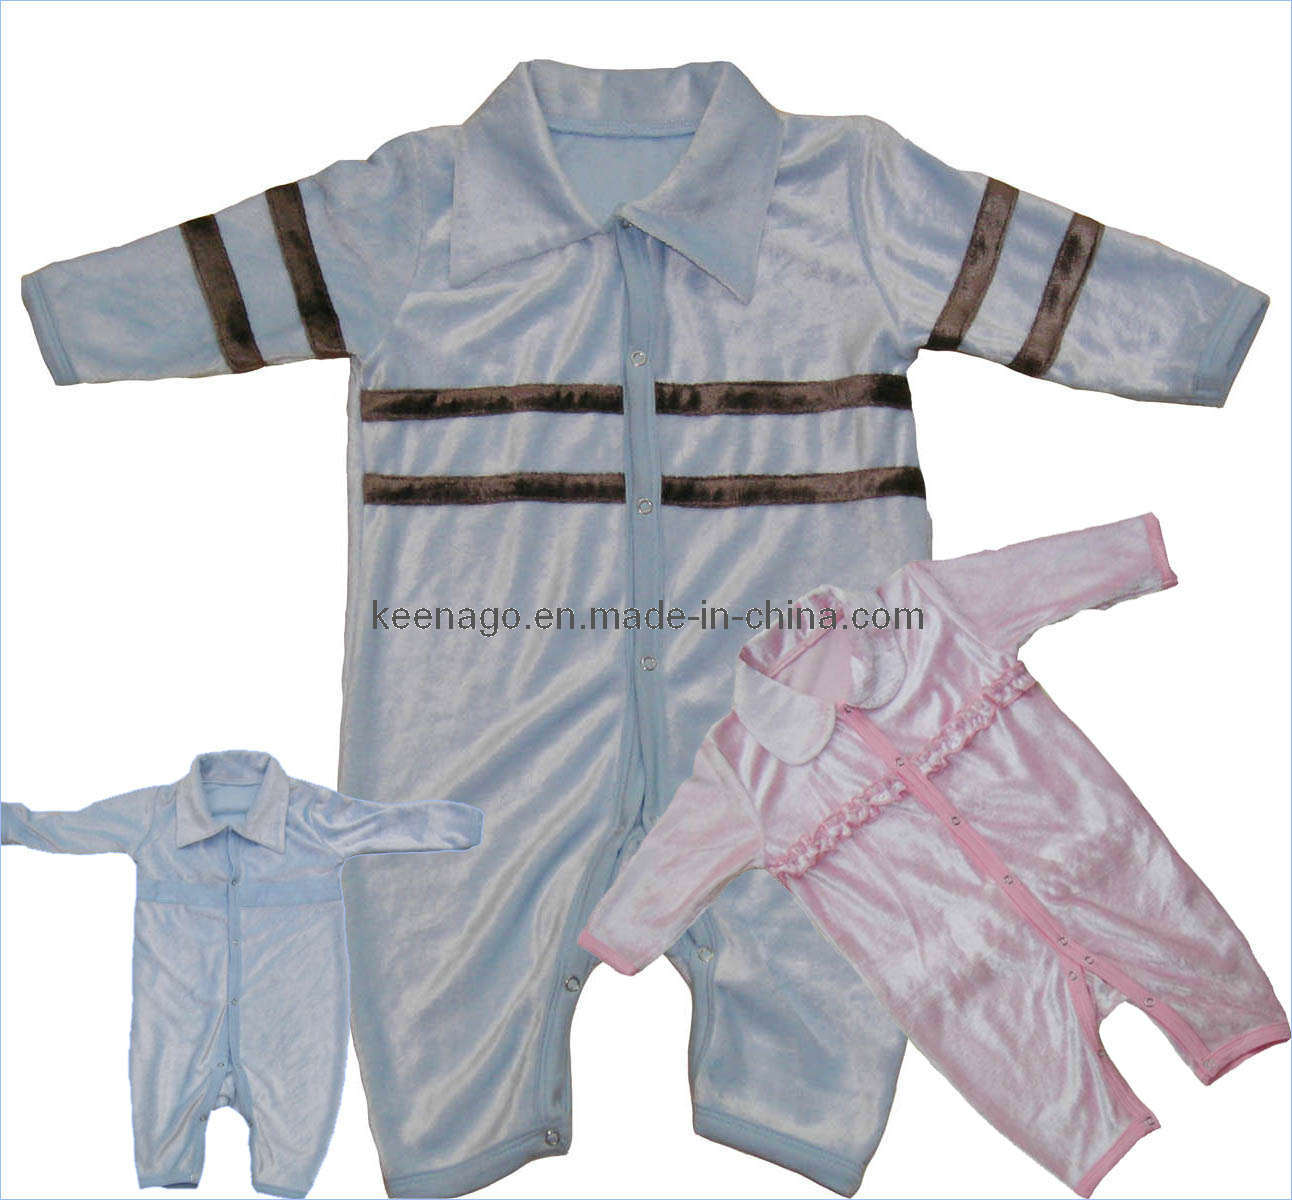 Toddler / Infant Coverall / Romper / Sleep Sack In Bambo Or Pima Cotton